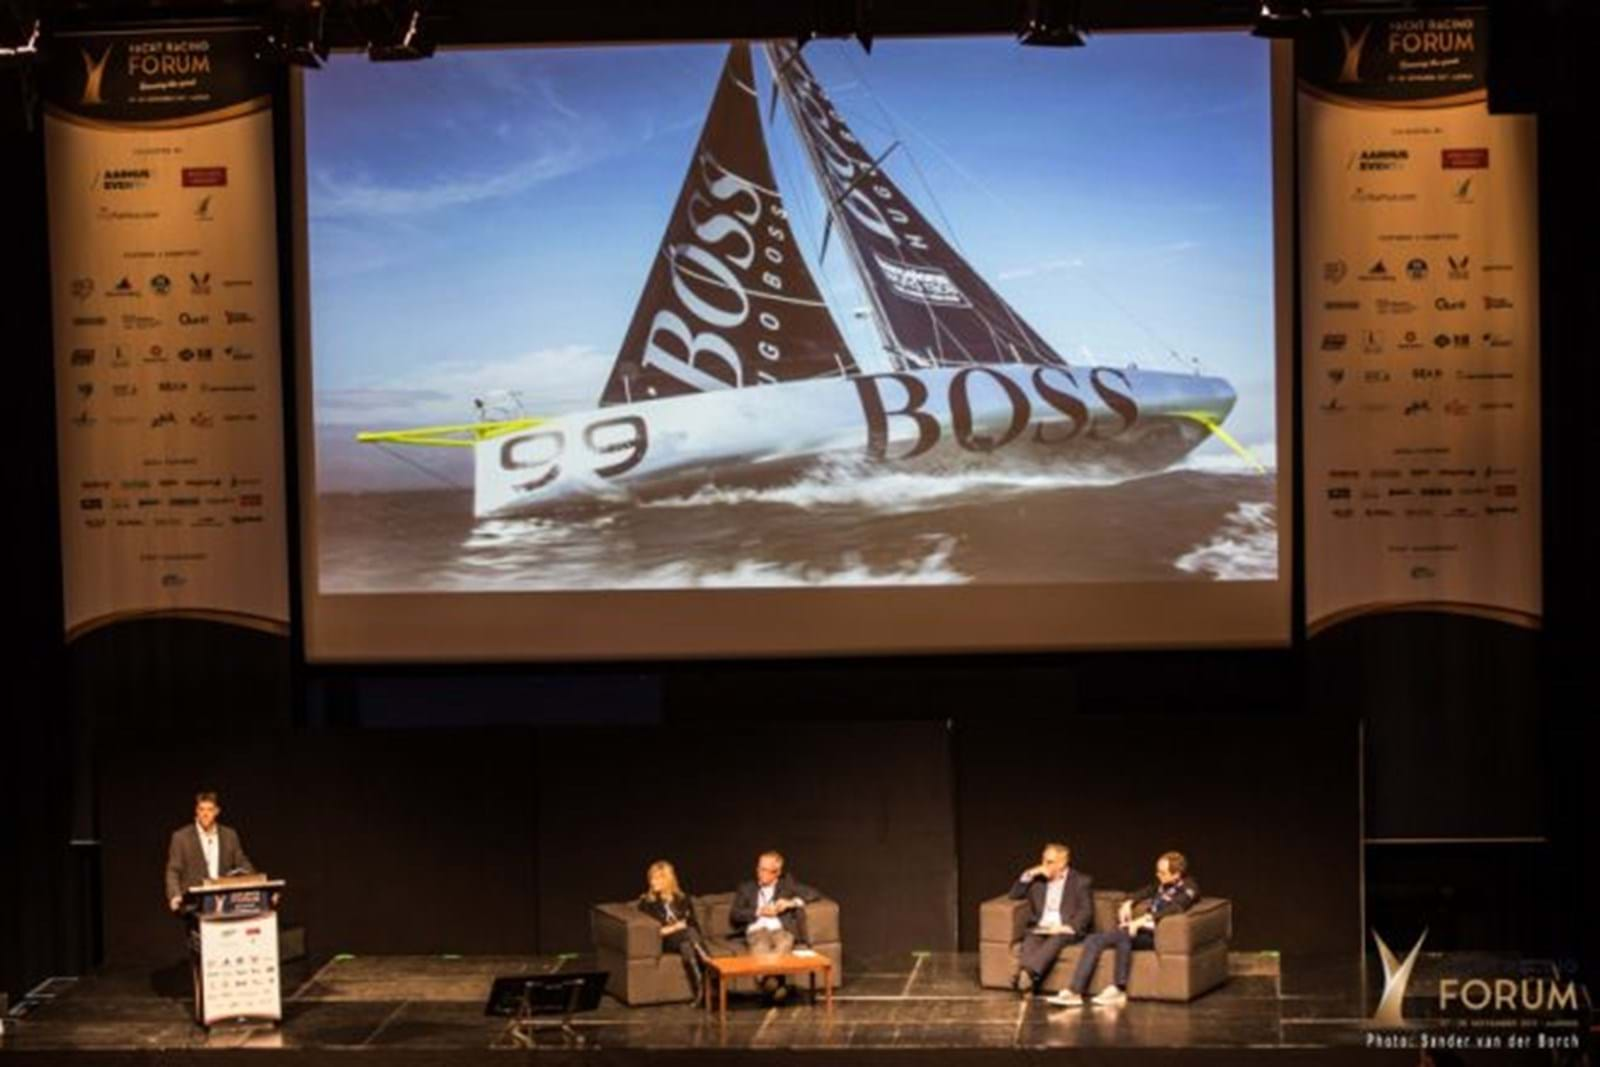 YACHT RACING FORUM EXTEND SUNSET+VINE'S CONTRACT UNTIL 2019